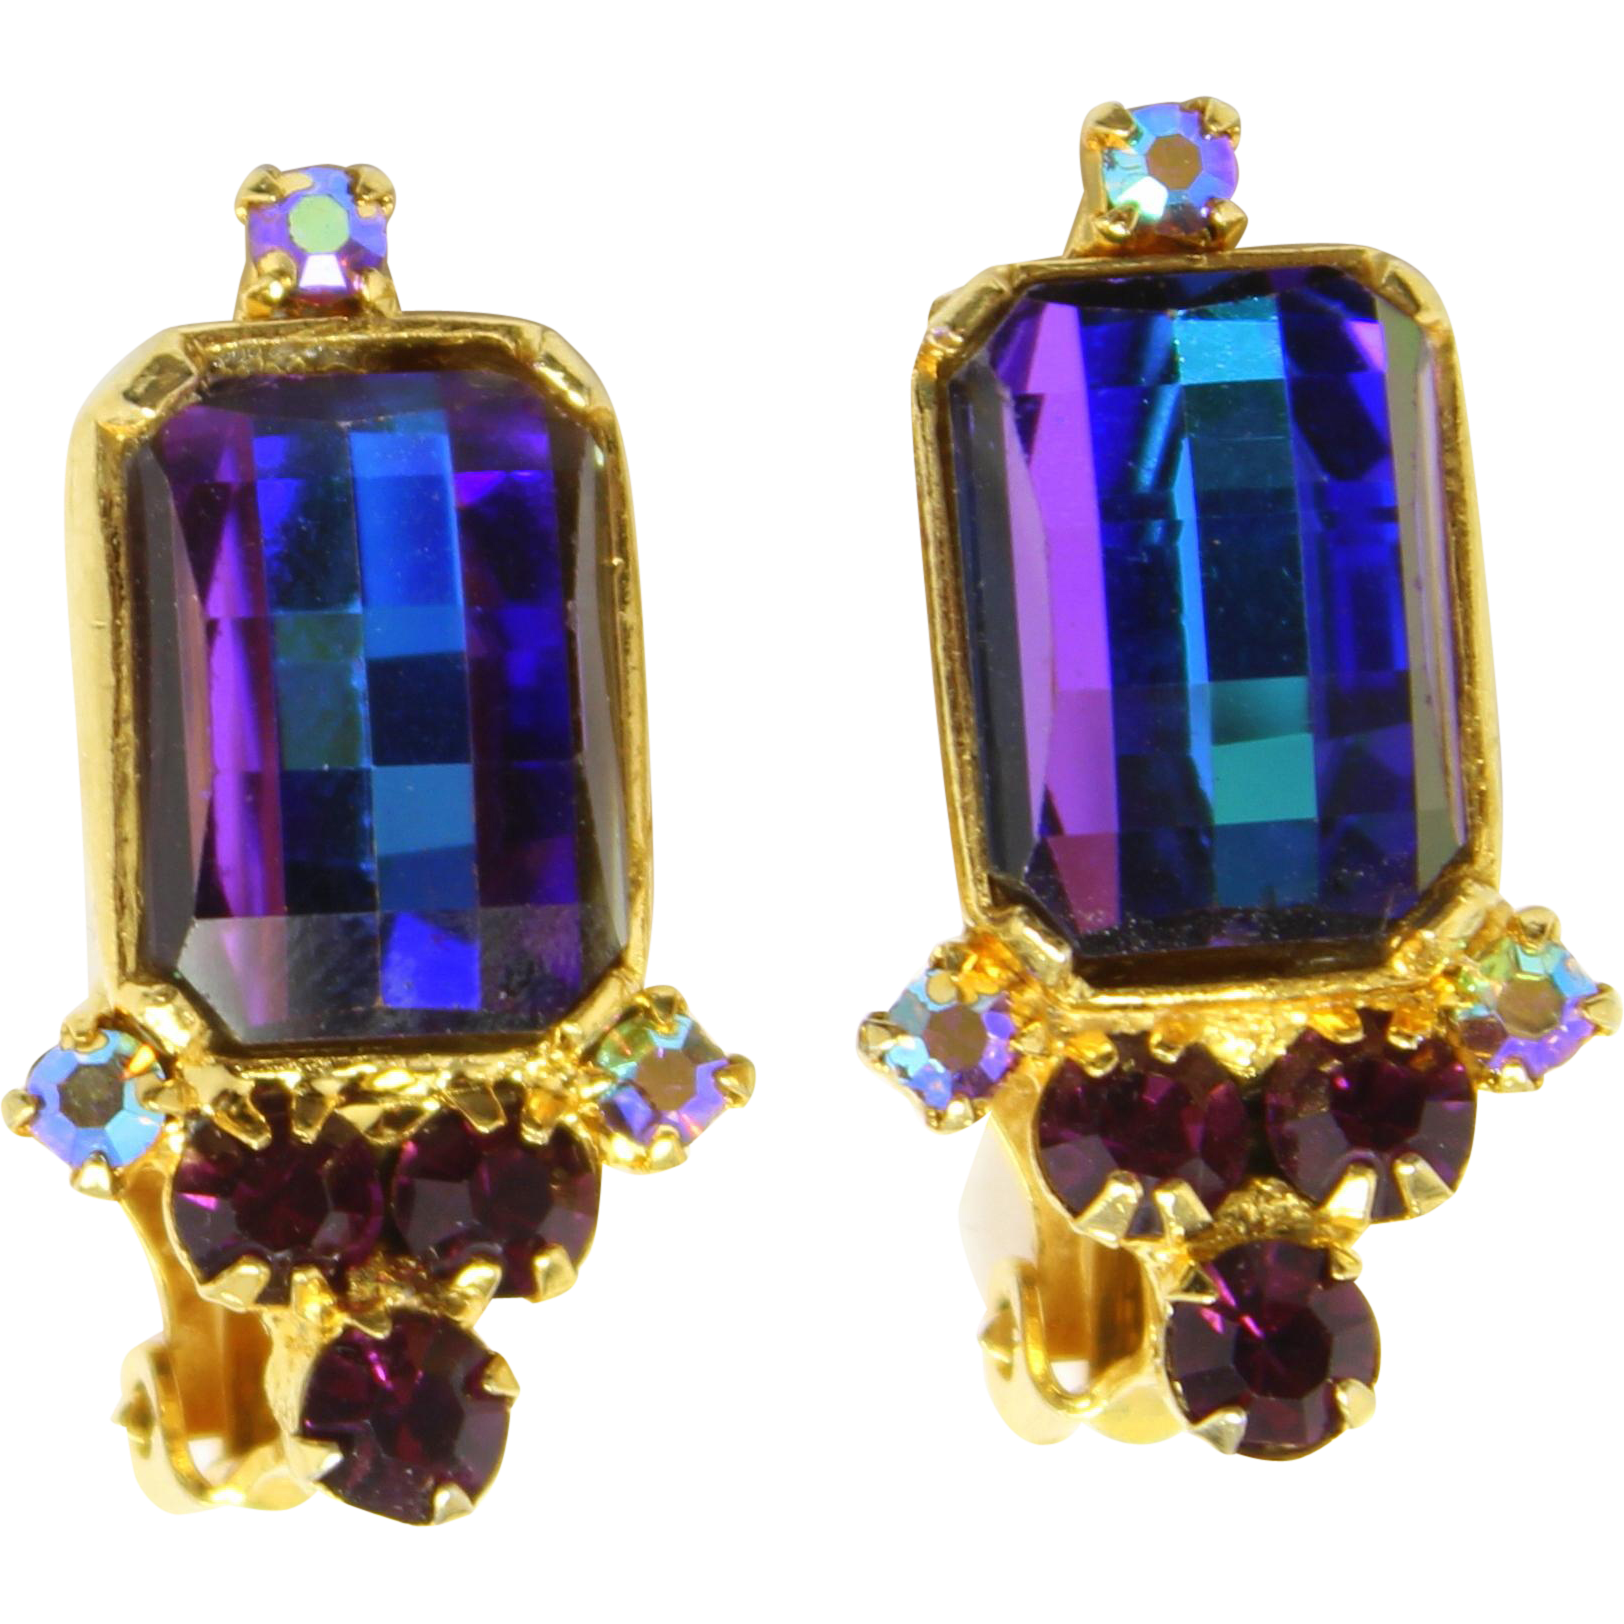 Vintage Juliana Book Piece Heliotrope Amethyst Purple Checker Board Rhinestone Earrings